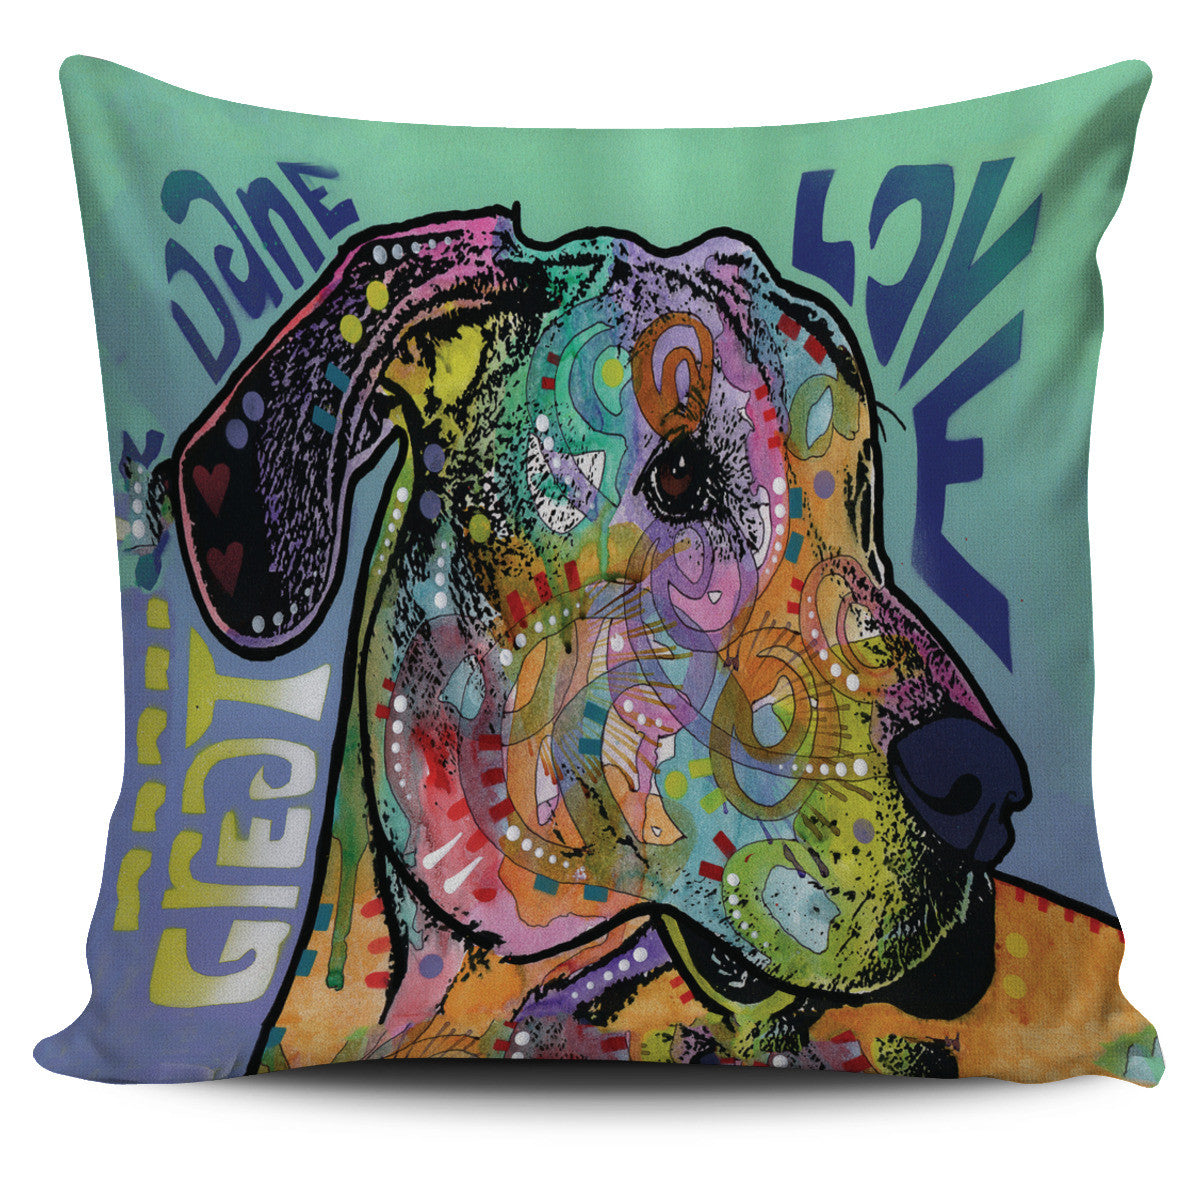 Great Dane Series Pillow Covers Offer